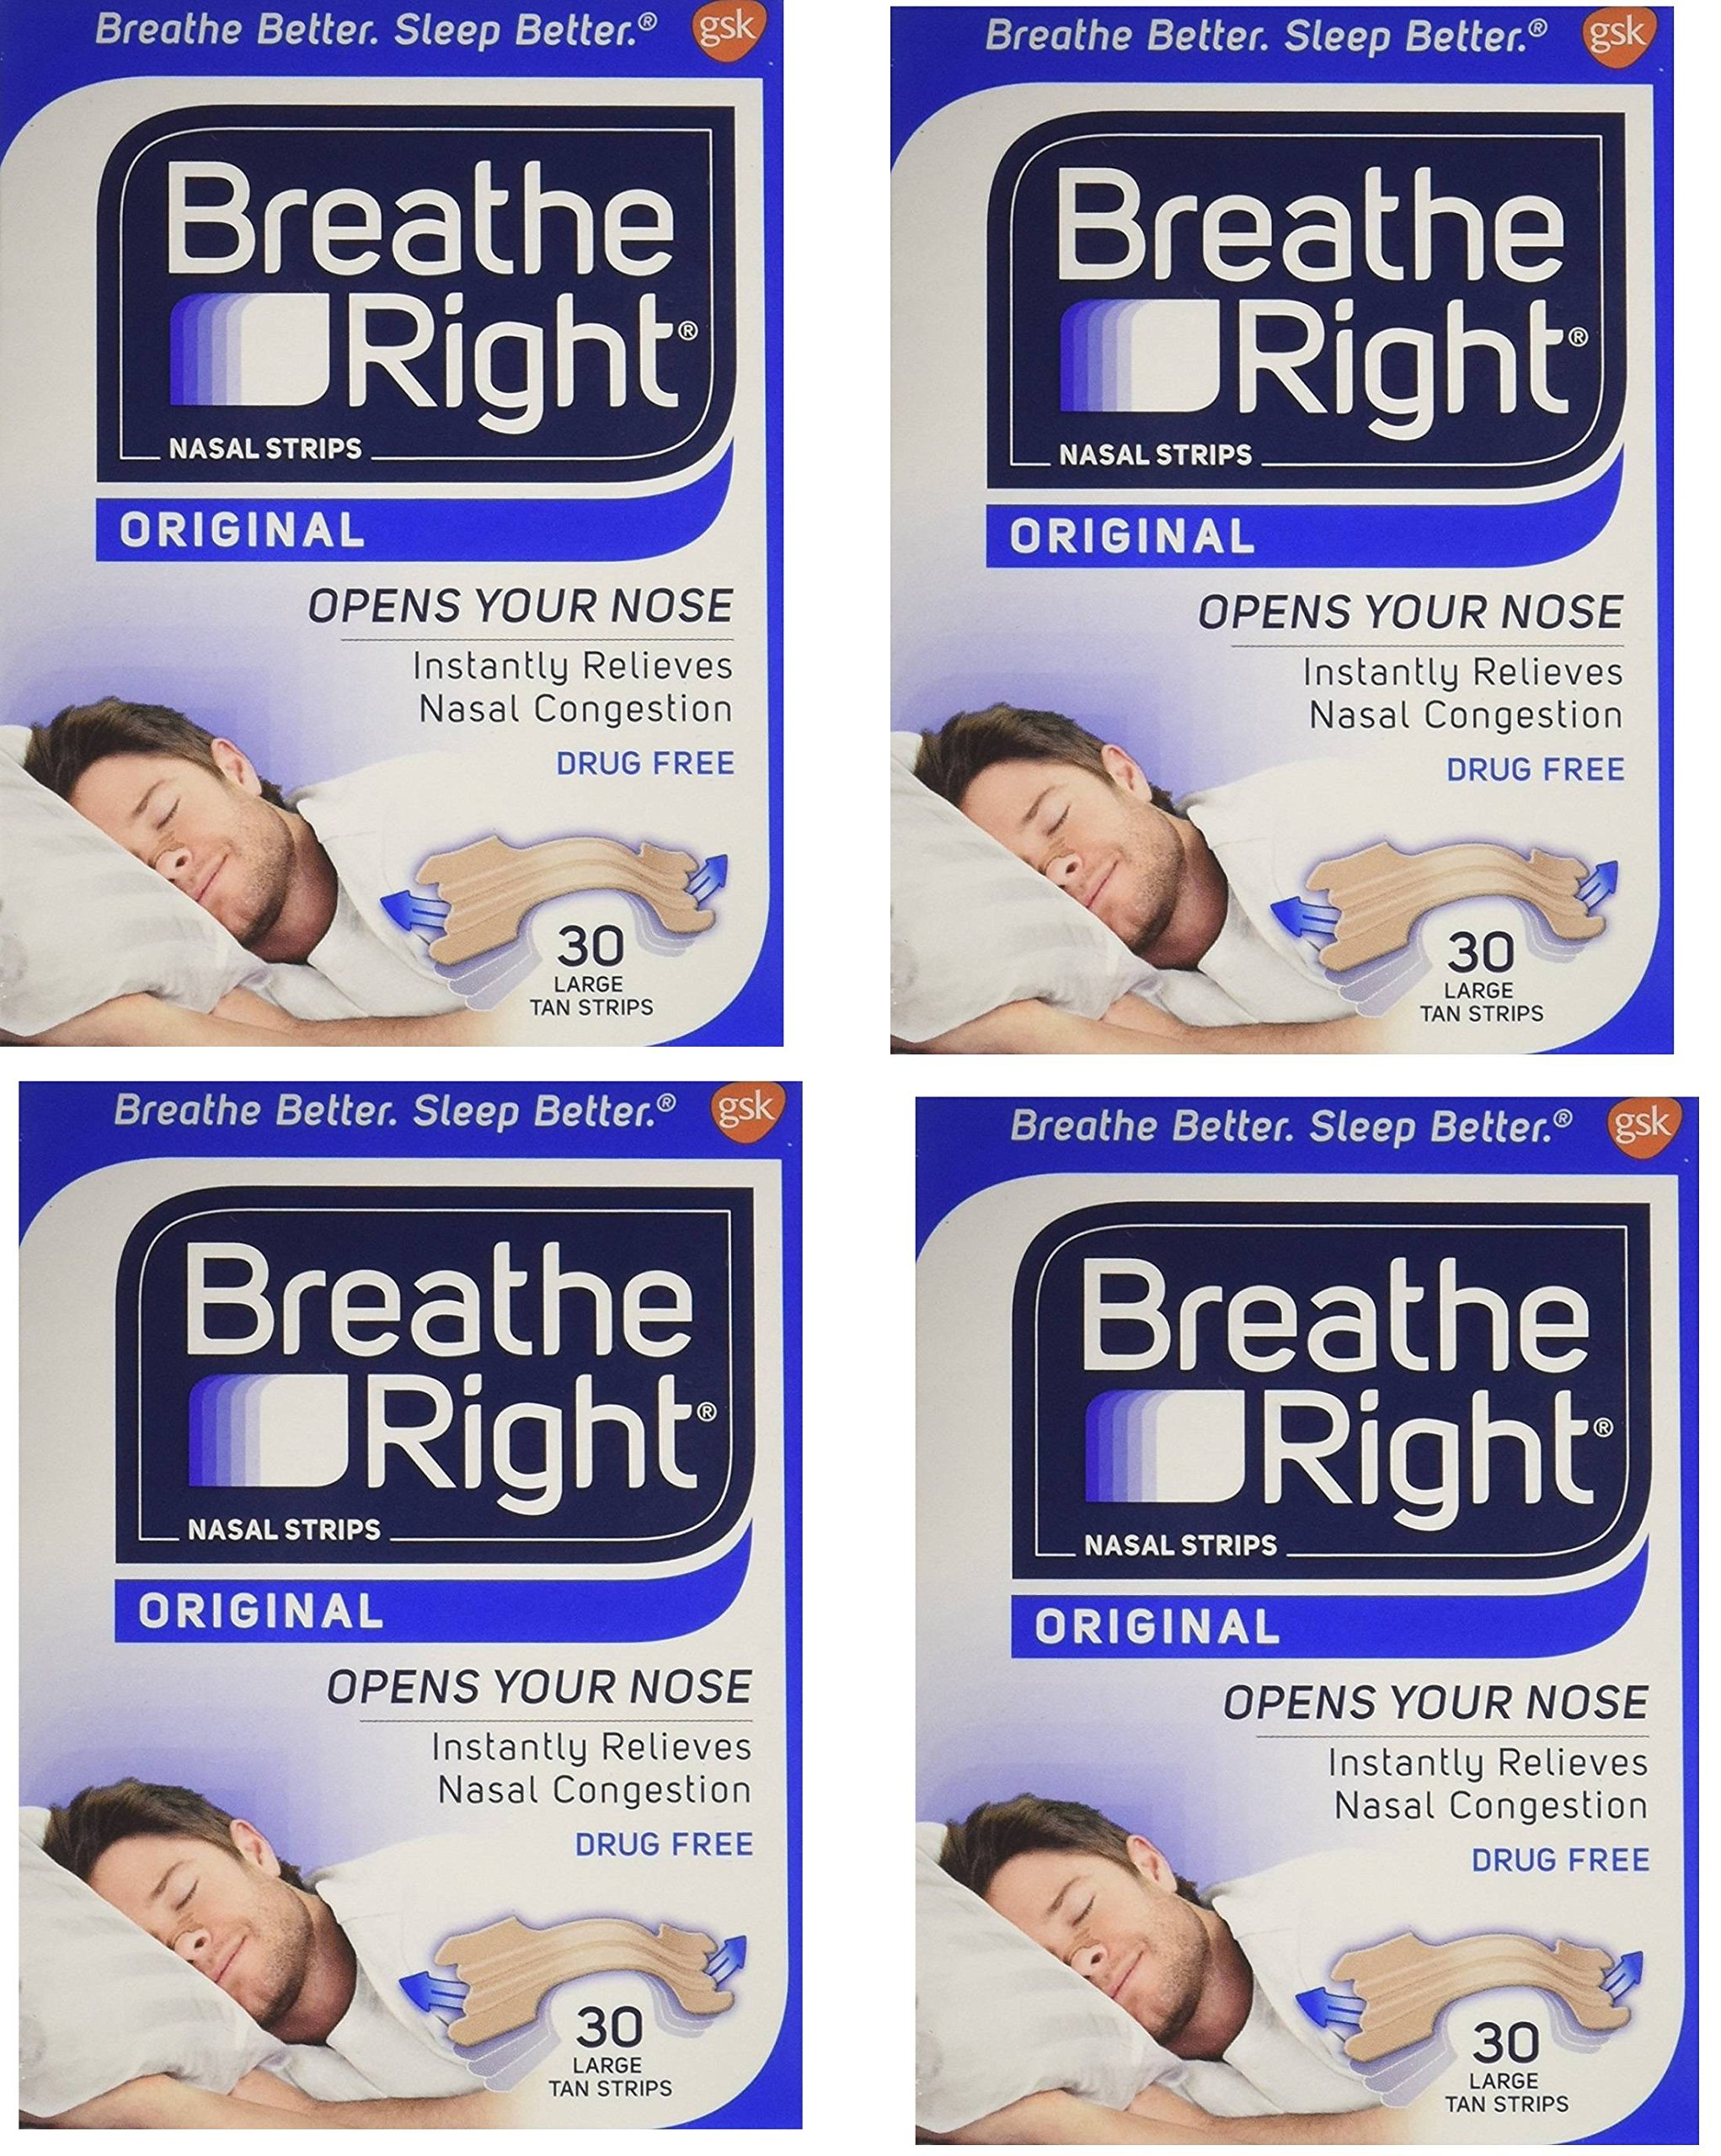 Breathe Right xYhlSC Drug Free Nasal Strips, Tan, Large, for Nasal Congestion Relief, 30 Count (4 Pack) by Bbhathe Right